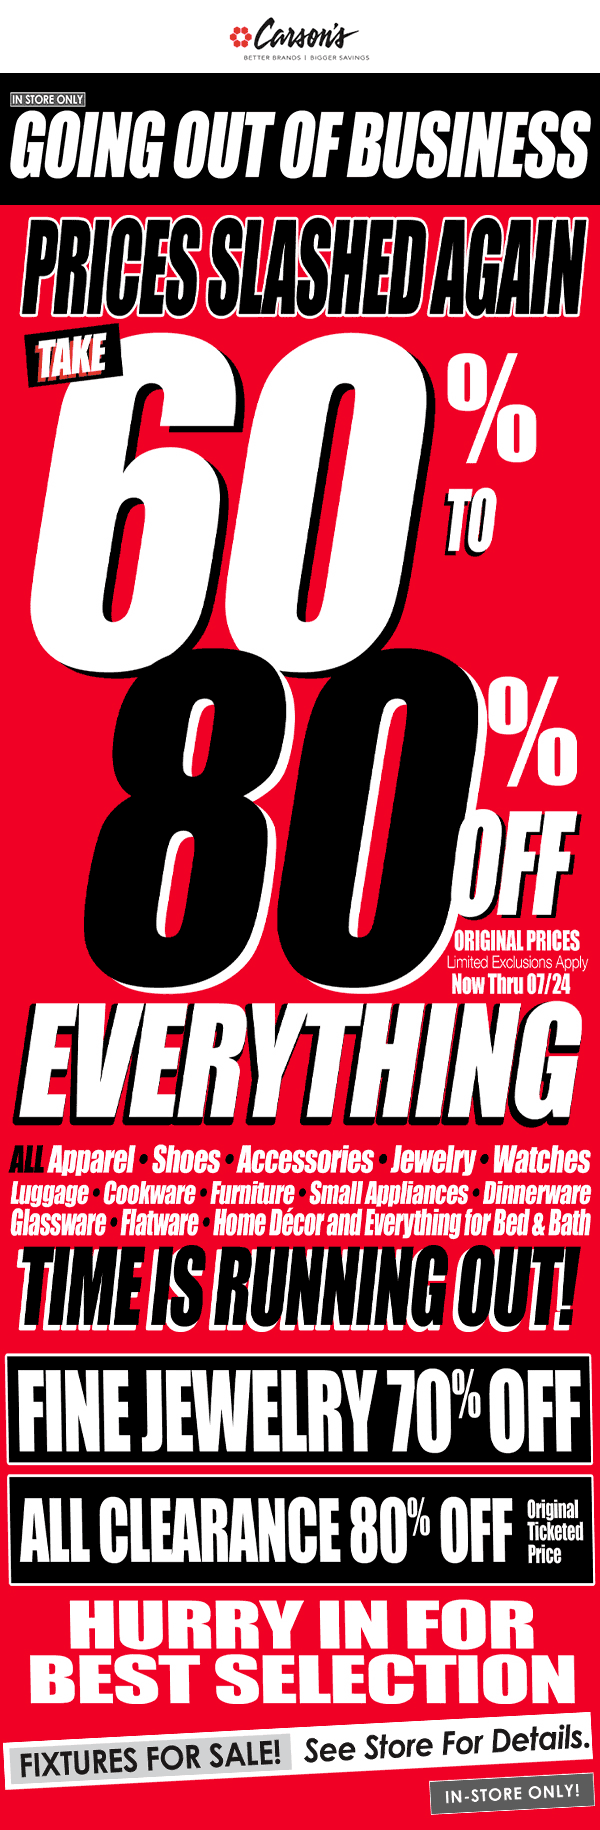 Carsons Coupon April 2019 60-80% off everything at Carsons going out-of-business liquidation